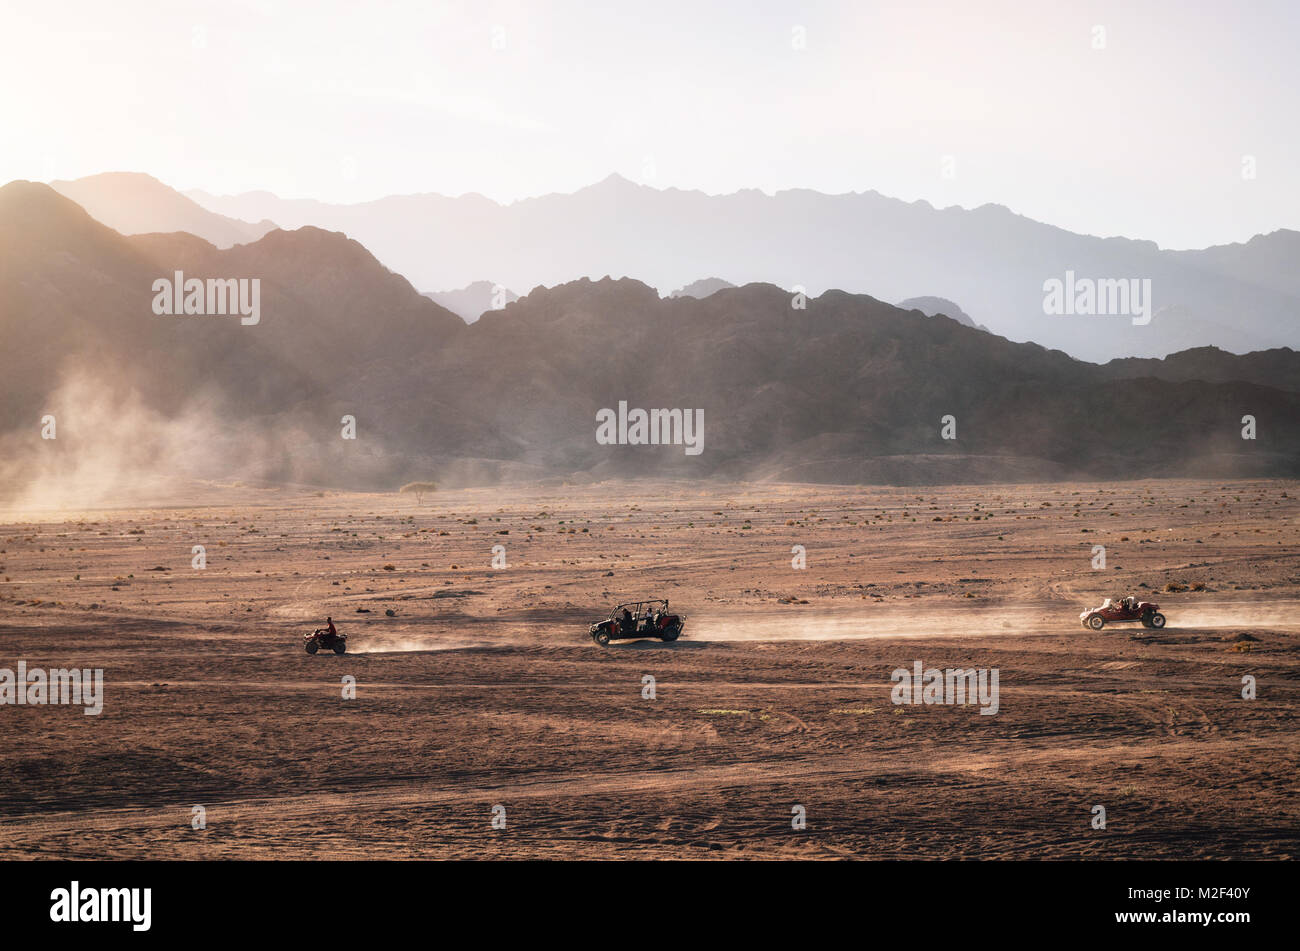 Buggy and ATV quads races in Sinai desert at sunset. Egyptian landscape with off-road vehicles and dust dirt road. - Stock Image